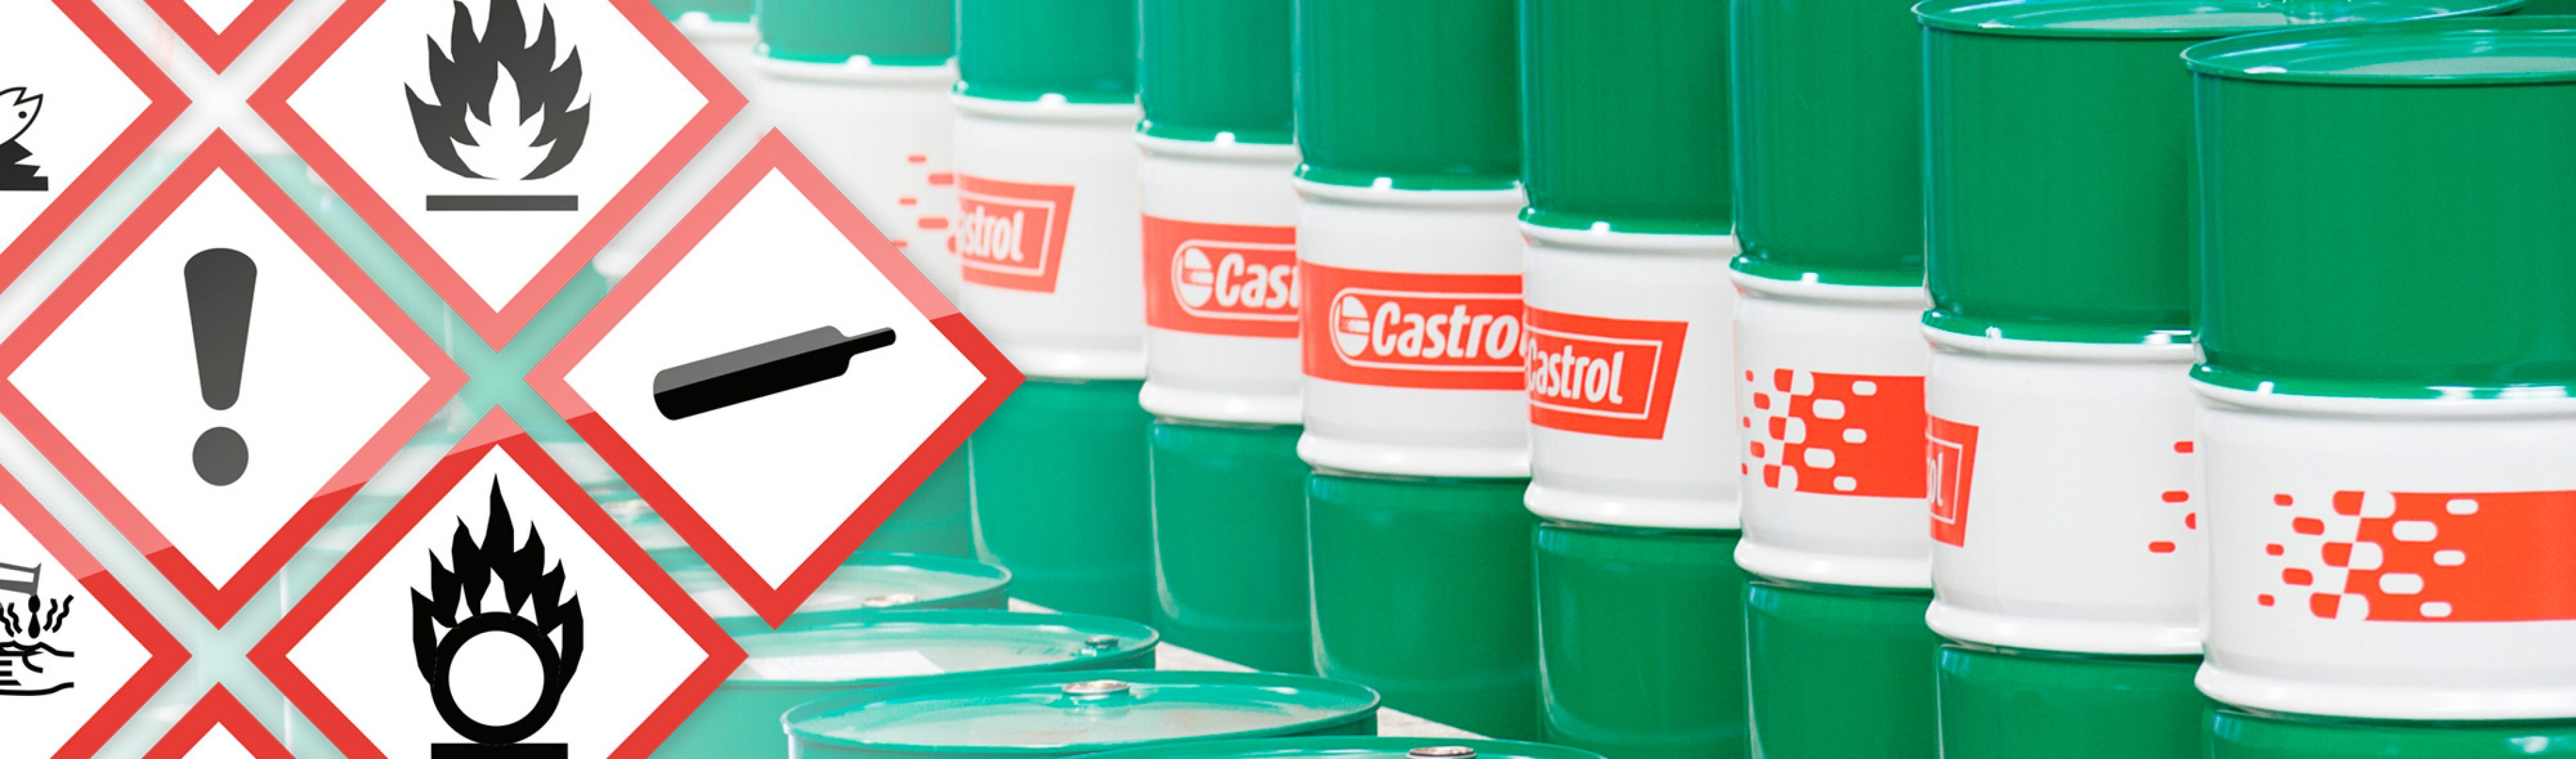 Castrol drums and safety labels